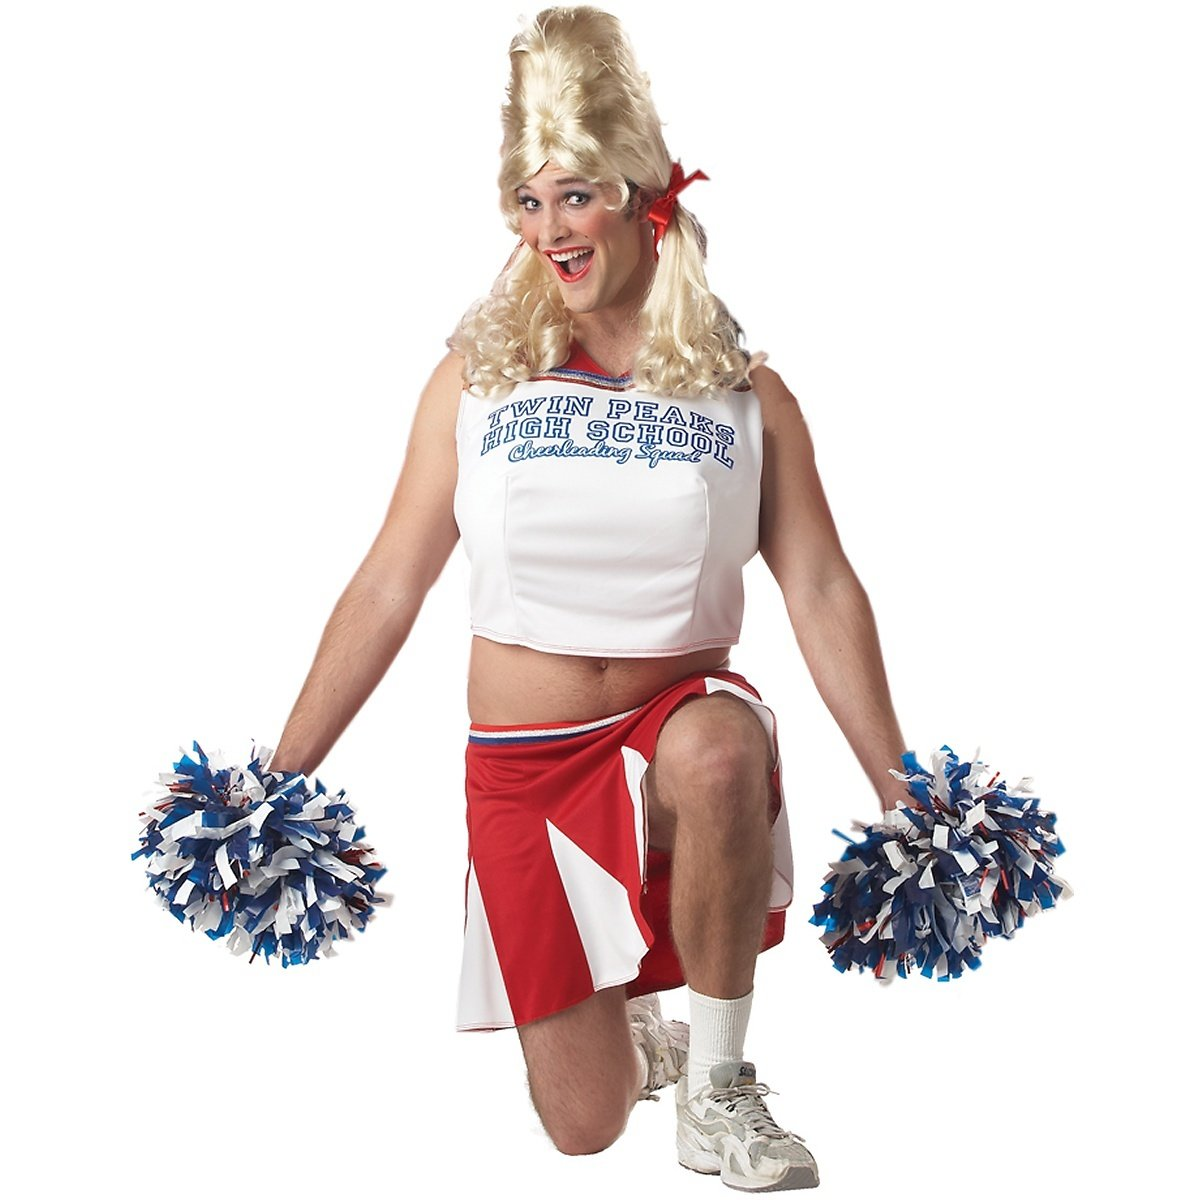 California Costumes Men's Varsity Cheerleader Costume